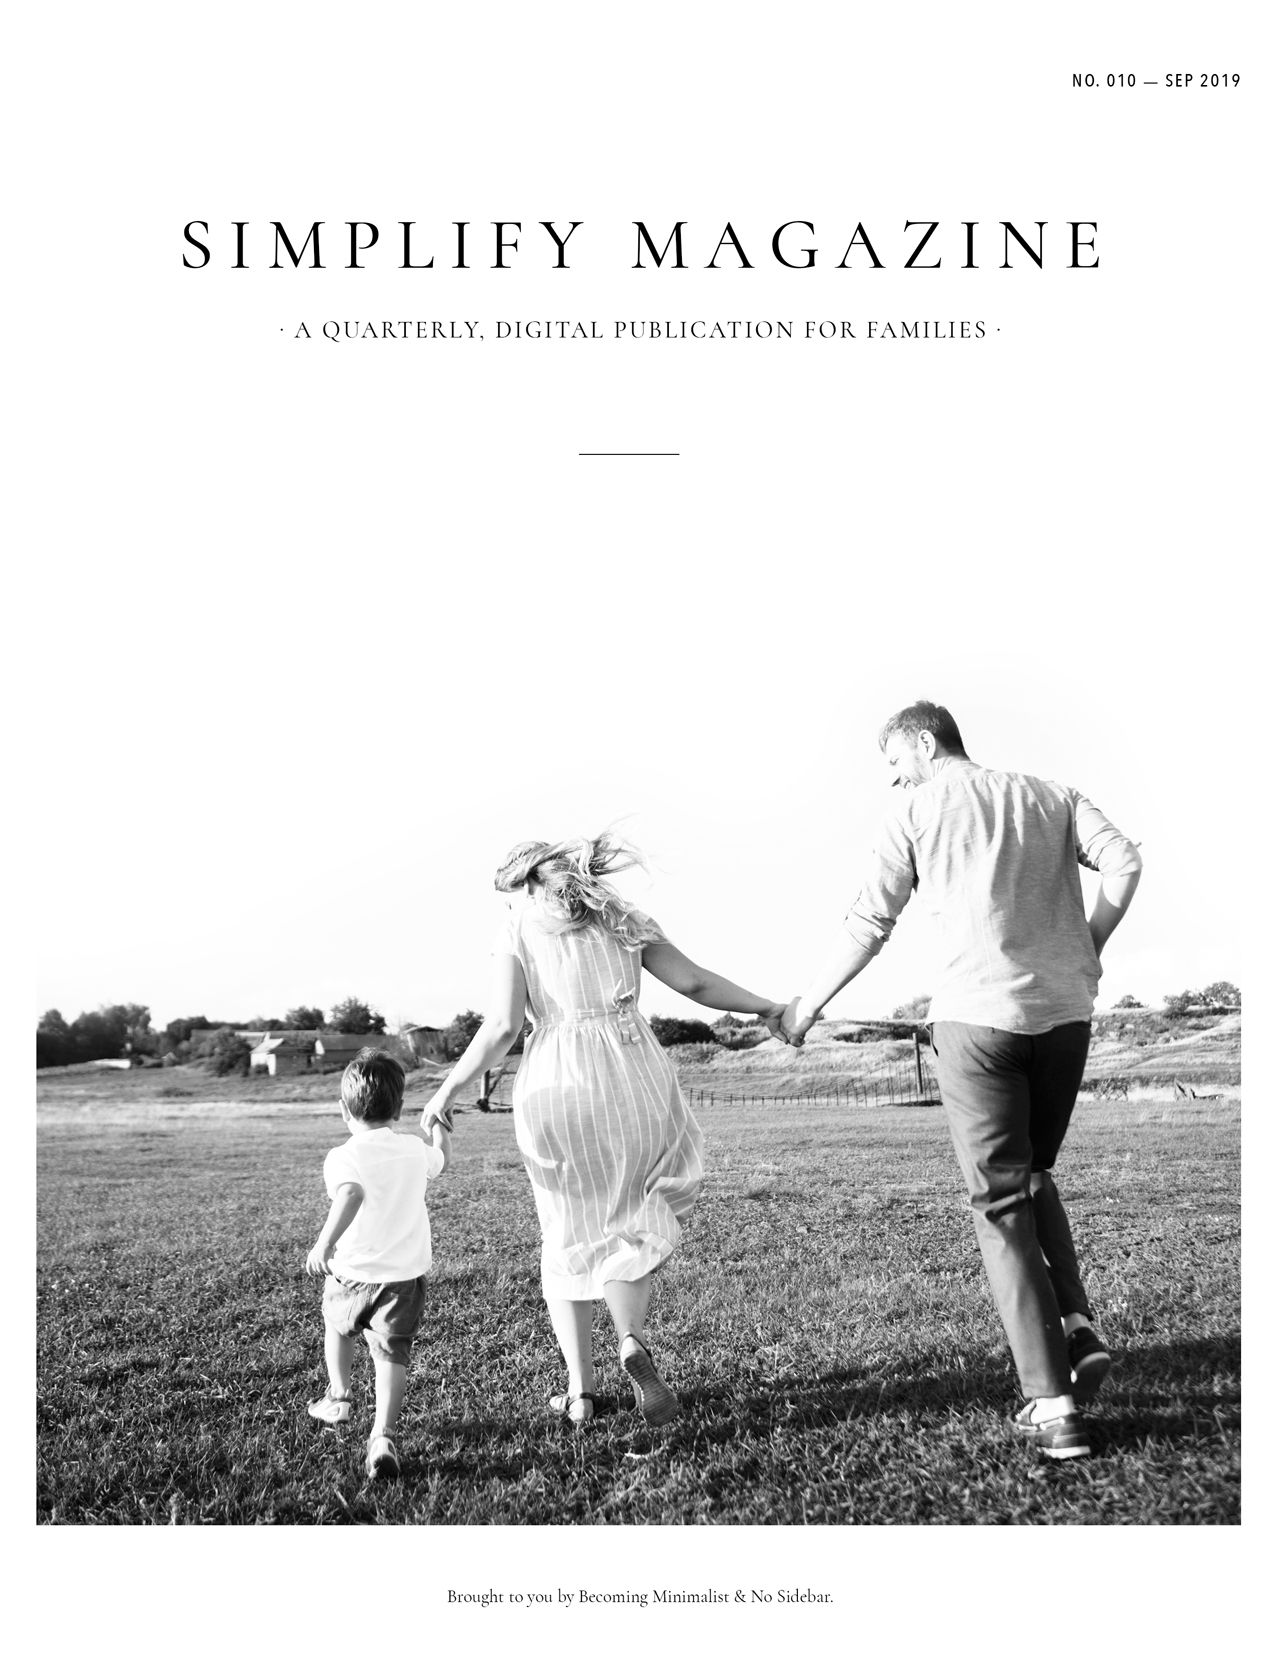 Simplify Magazine Issue #010